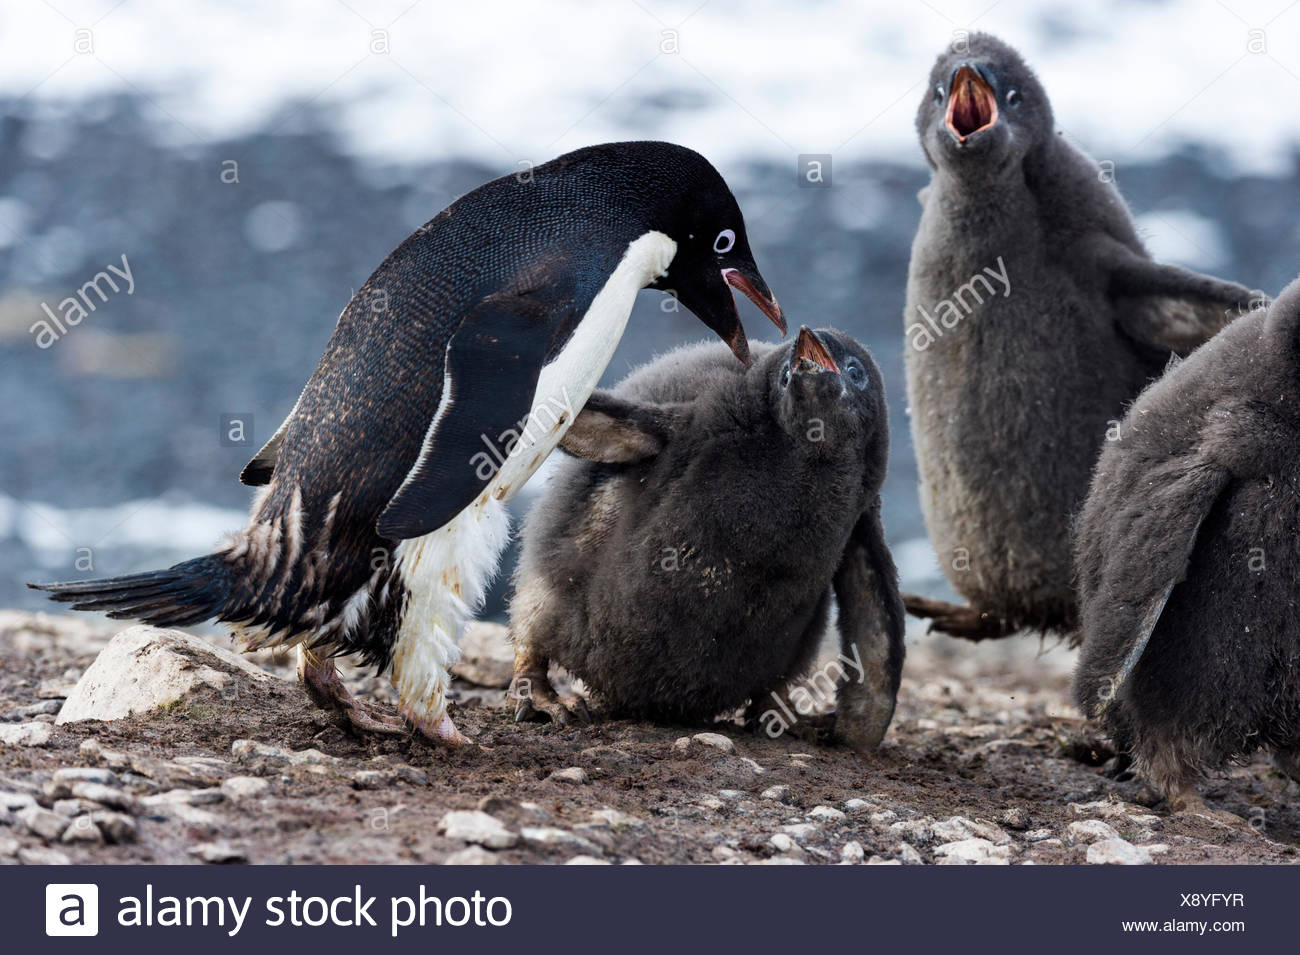 Adelie Penguin chicks begging for food from a parent in a creche. - Stock Image